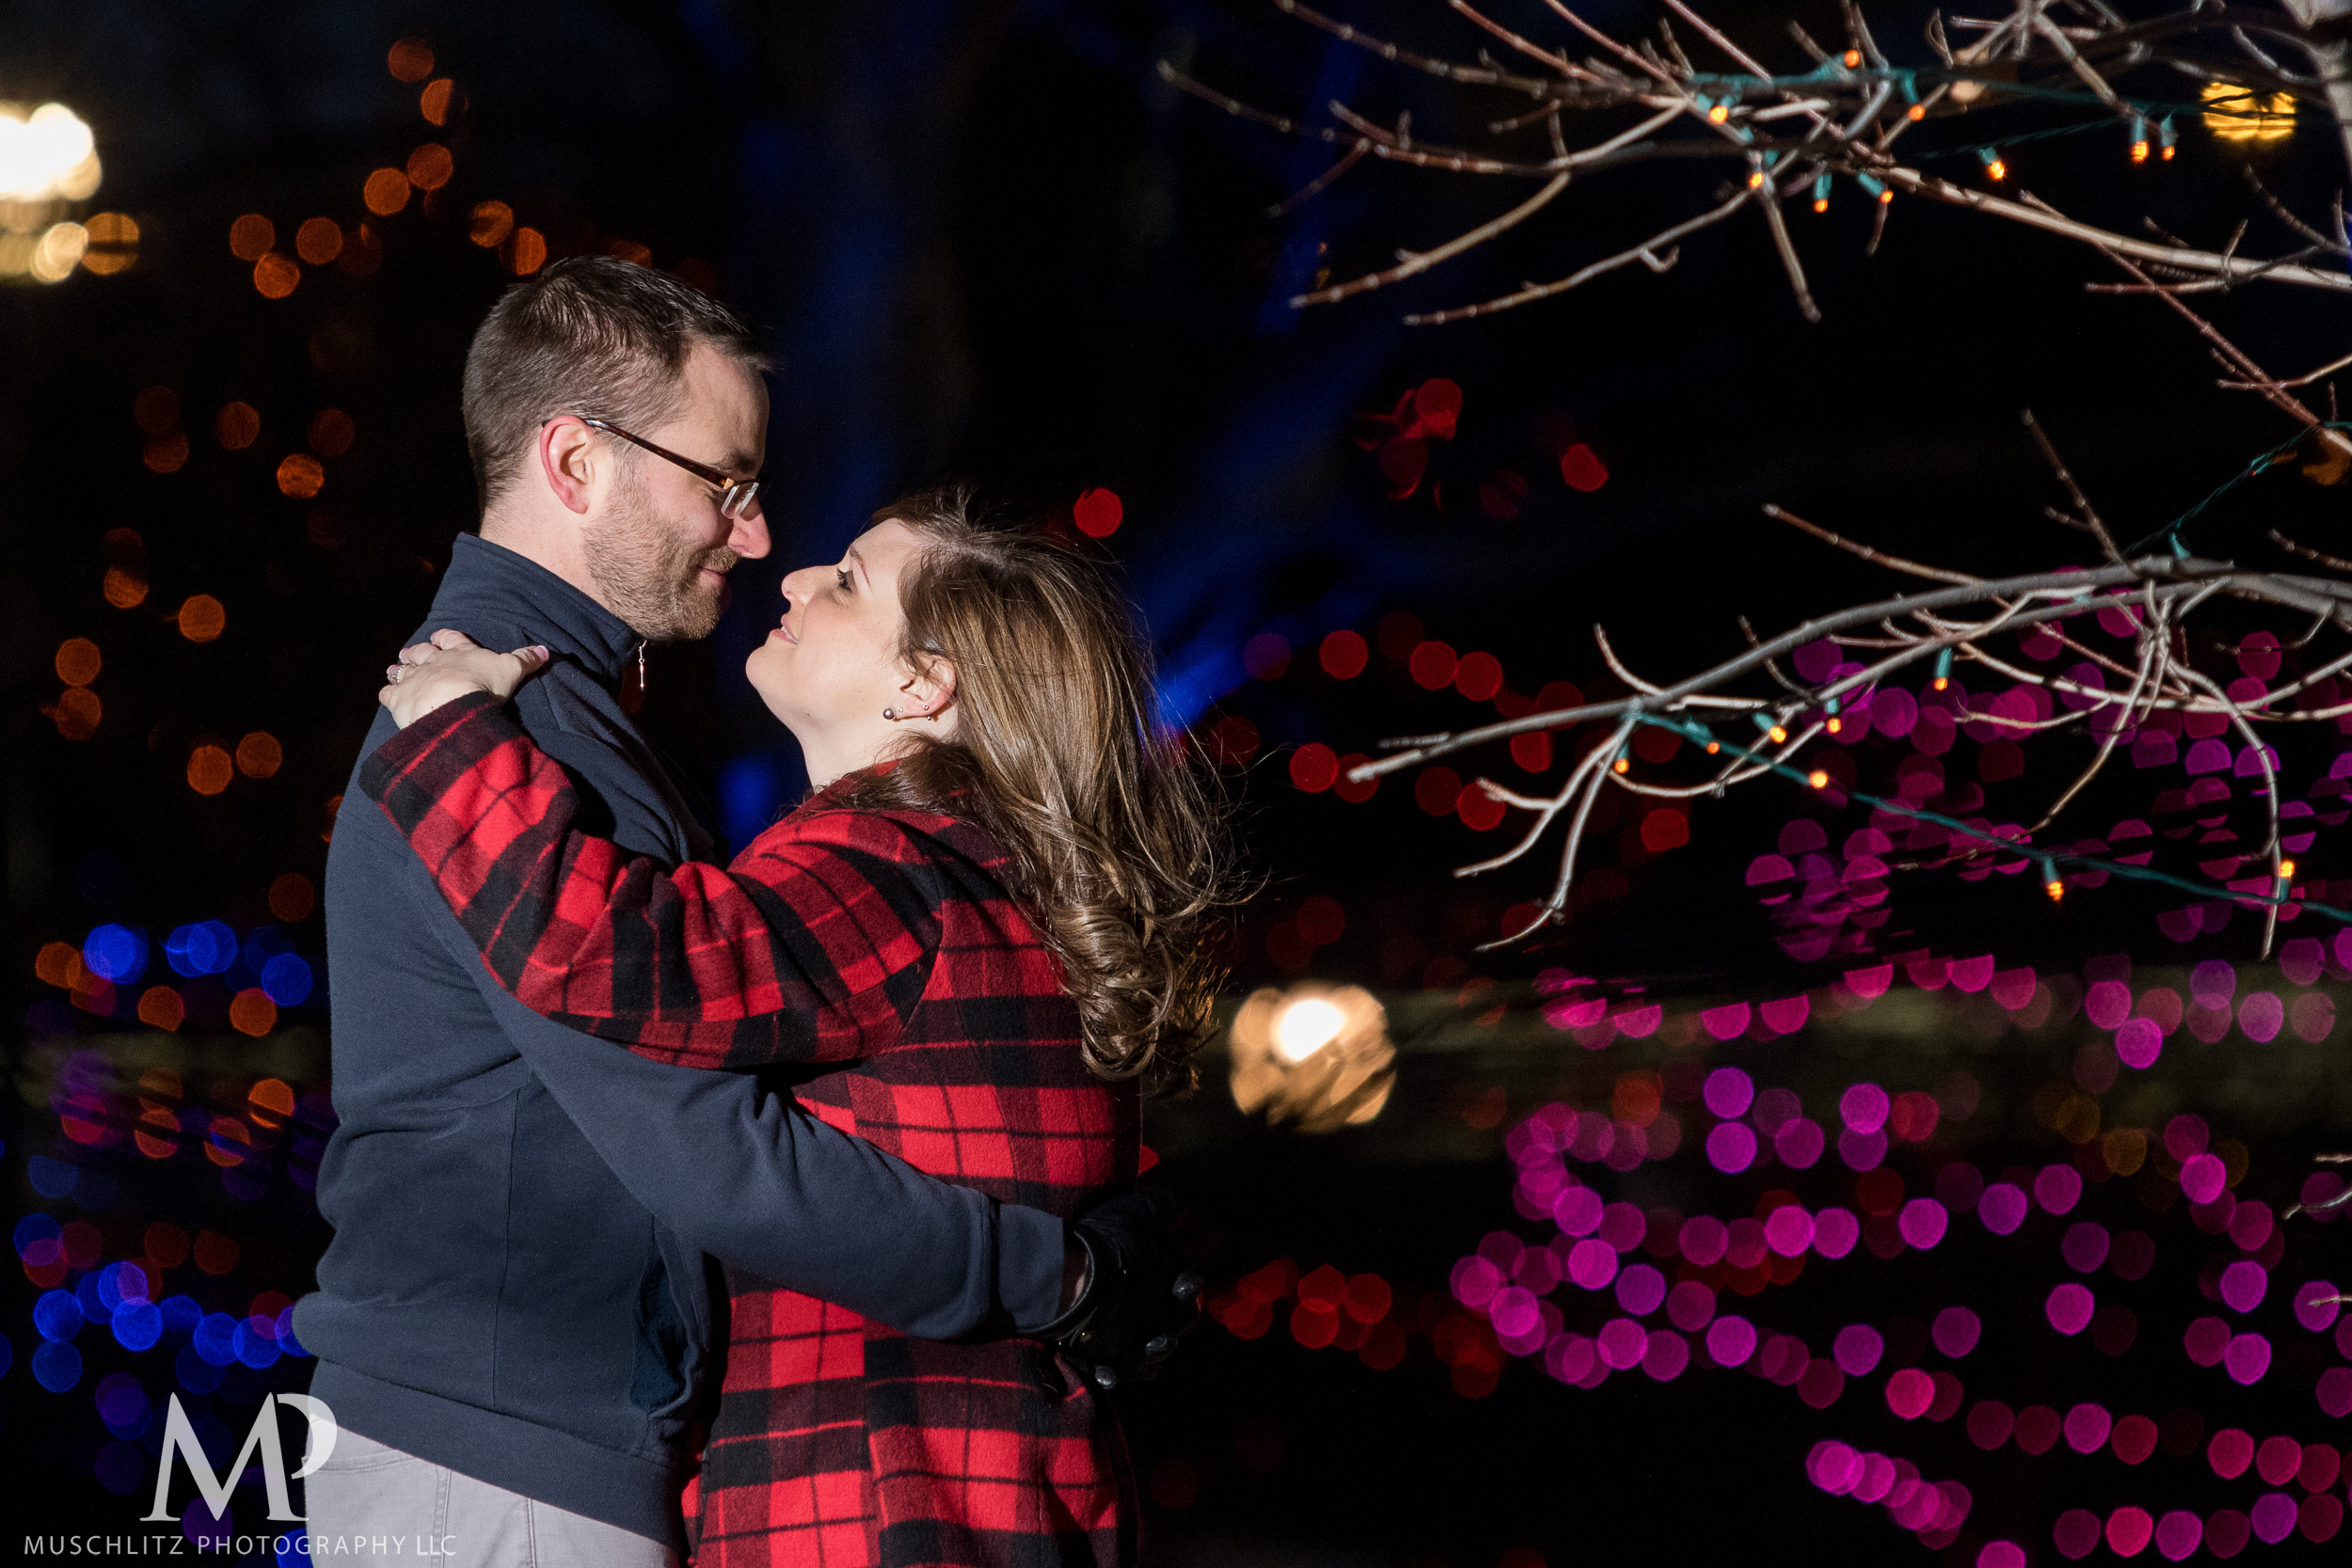 bicentennial-park-engagement-session-holiday-portraits-columbus-ohio-049.JPG